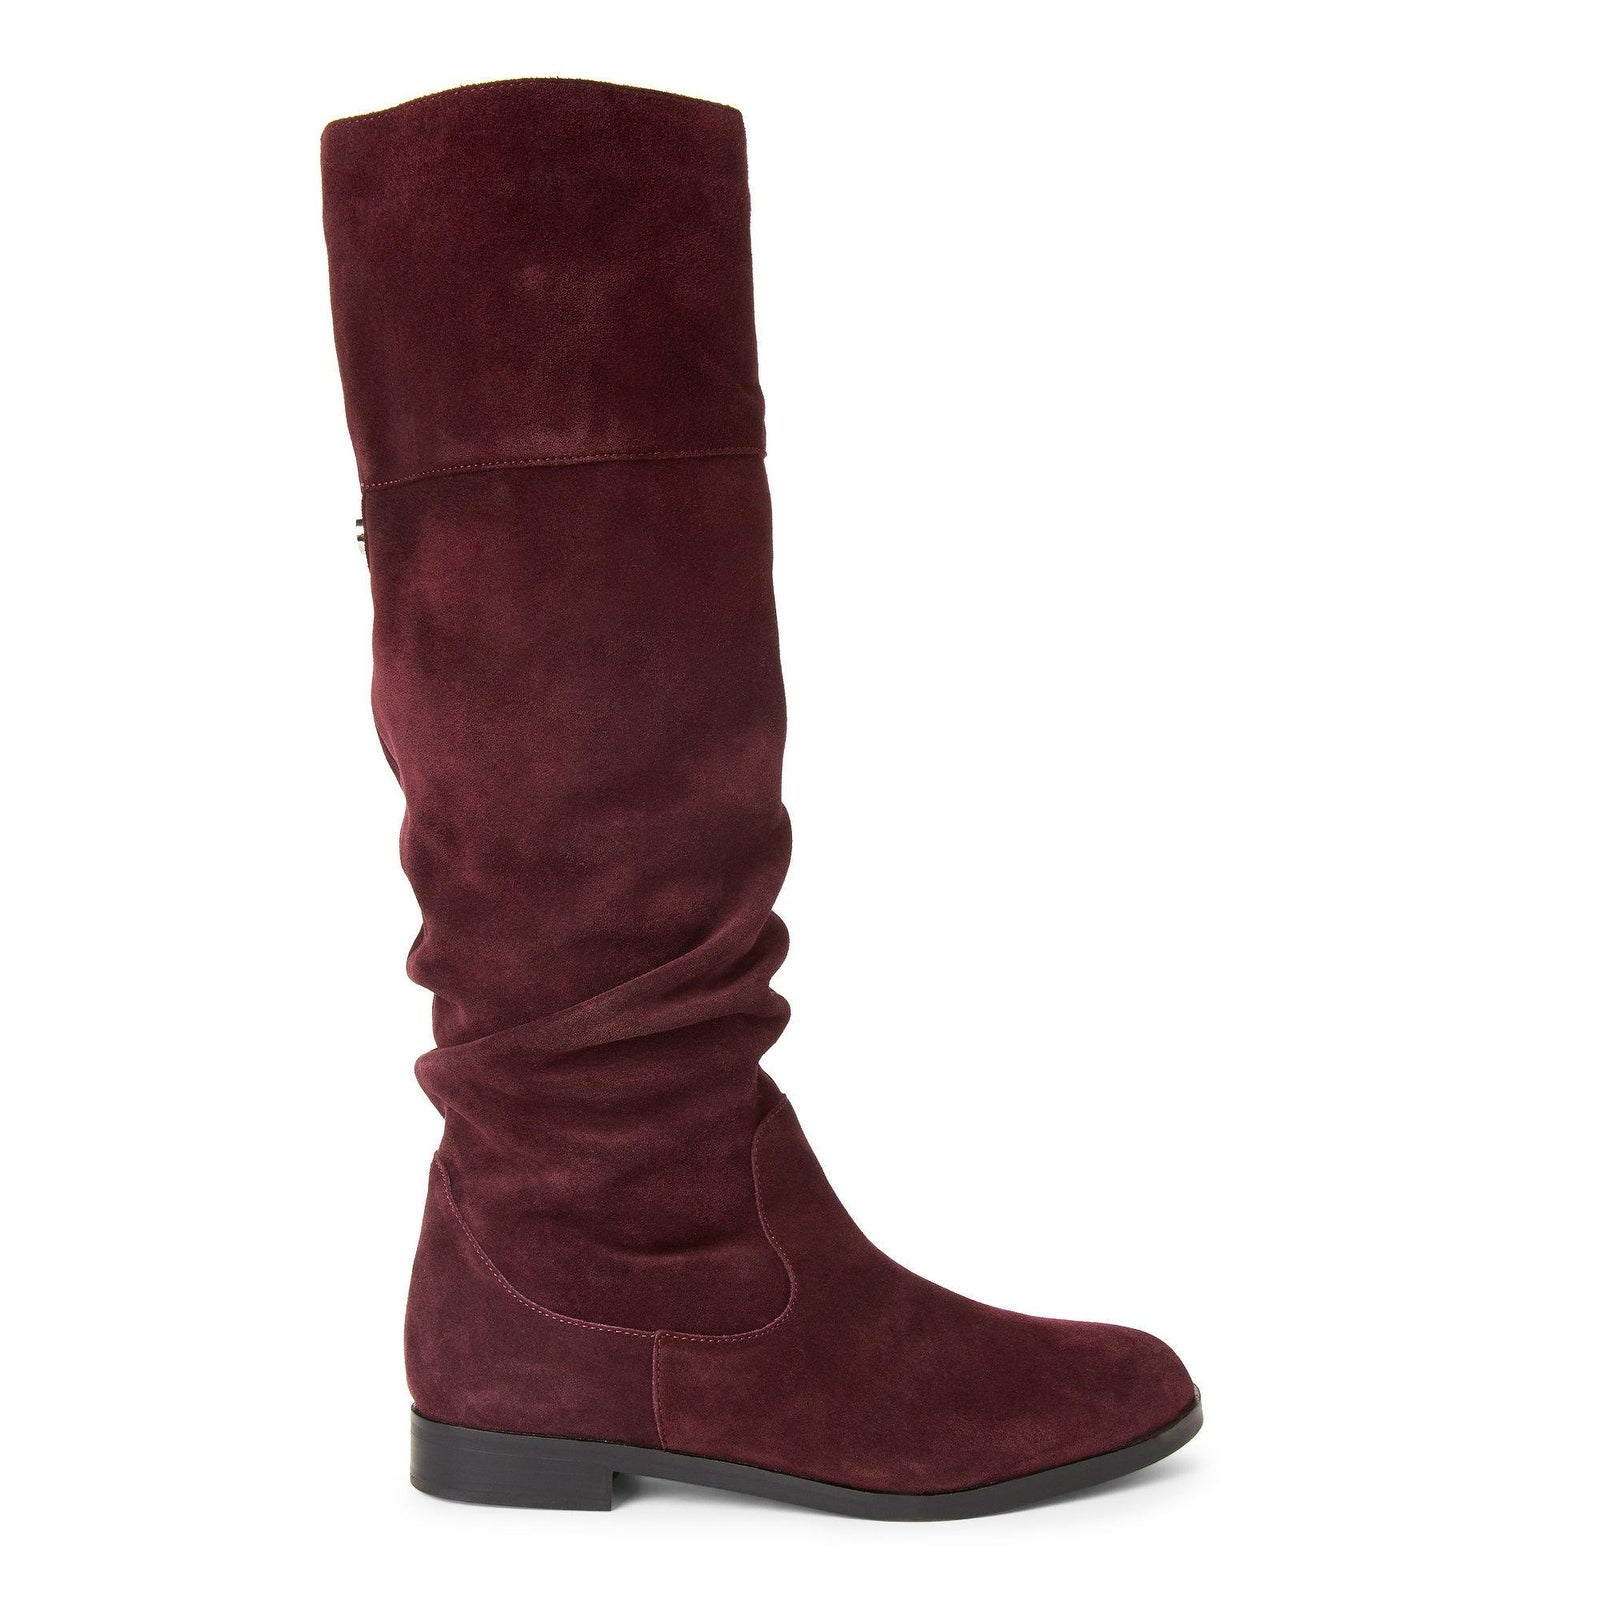 c8451660cab Shop Steve Madden Womens Balen Suede Almond Toe Knee High Fashion Boots -  Free Shipping Today - Overstock - 21346037